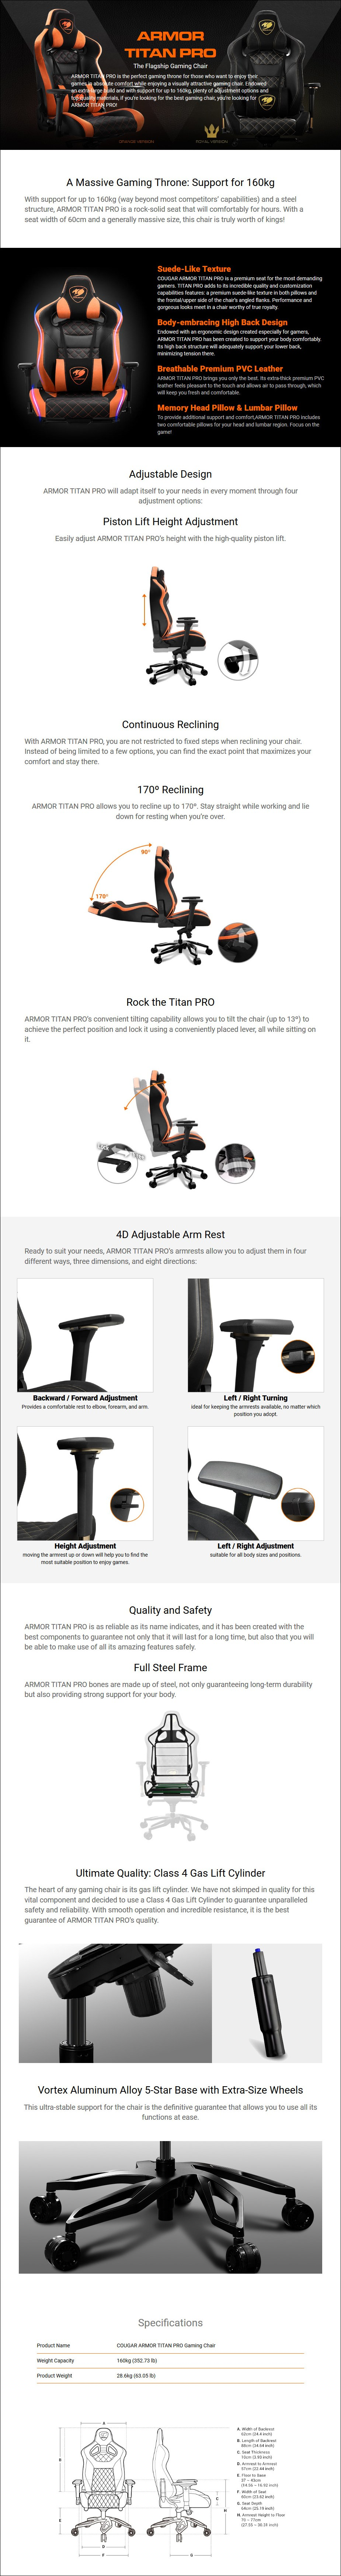 Cougar Armor Titan Pro Gaming Chair - Black/Orange - Overview 1